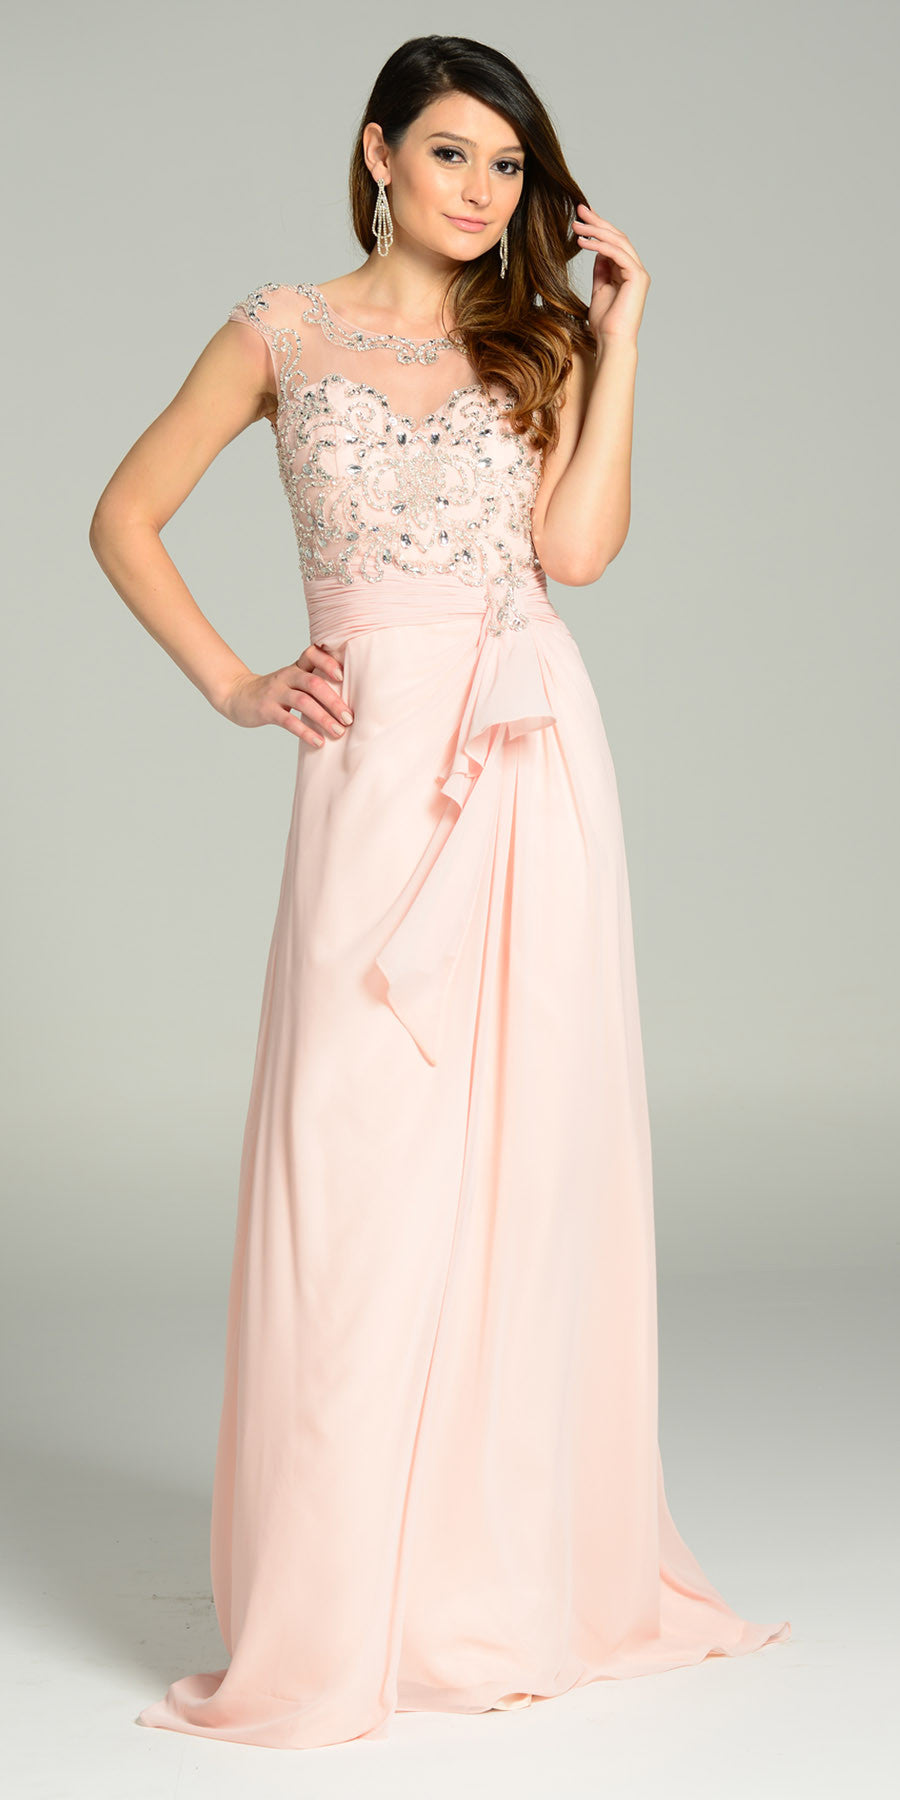 ON SPECIAL LIMITED STOCK - Floor Length Chiffon/Mesh Formal Gown Blush Cap Sleeve